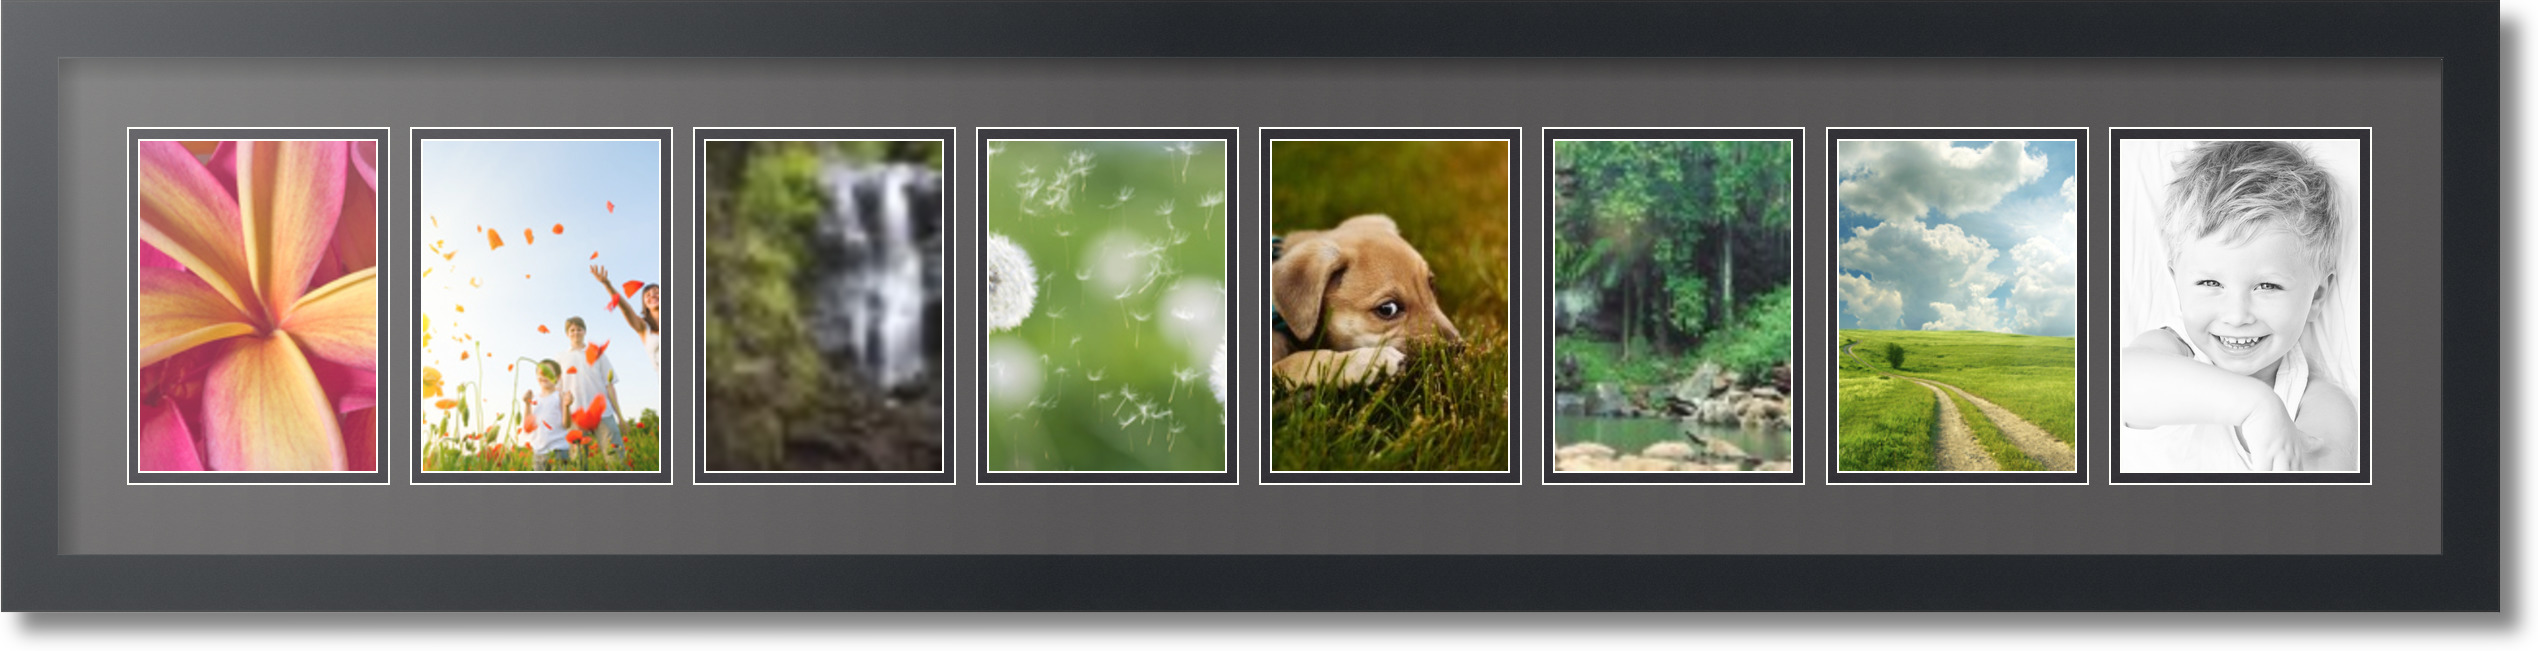 satin black collage picture frame with 8 5x7 opening s double matted. Black Bedroom Furniture Sets. Home Design Ideas